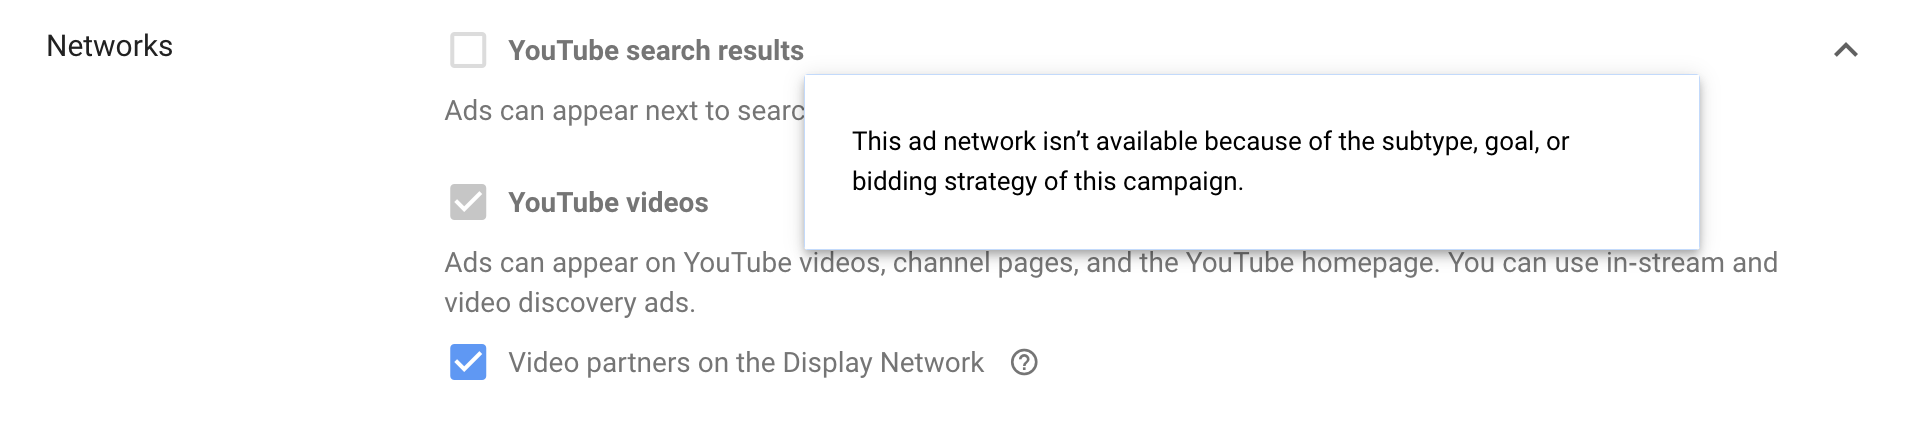 YouTube Form Ads - Network Set up.png